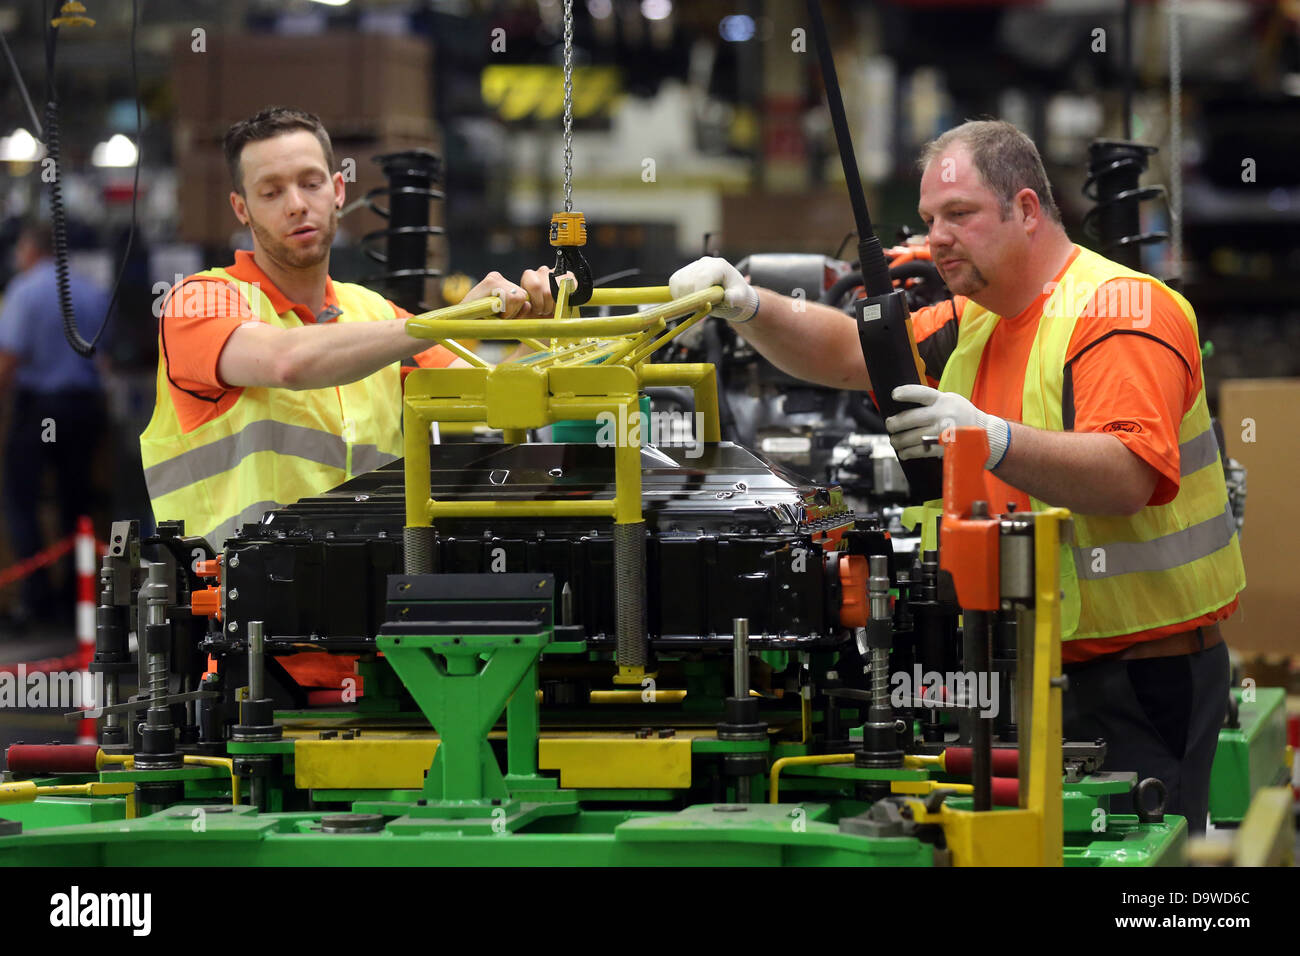 Maintaining the battery for the Ford FocusElectric car at the production line of the Ford plant in Saarlouis, Germany - Stock Image